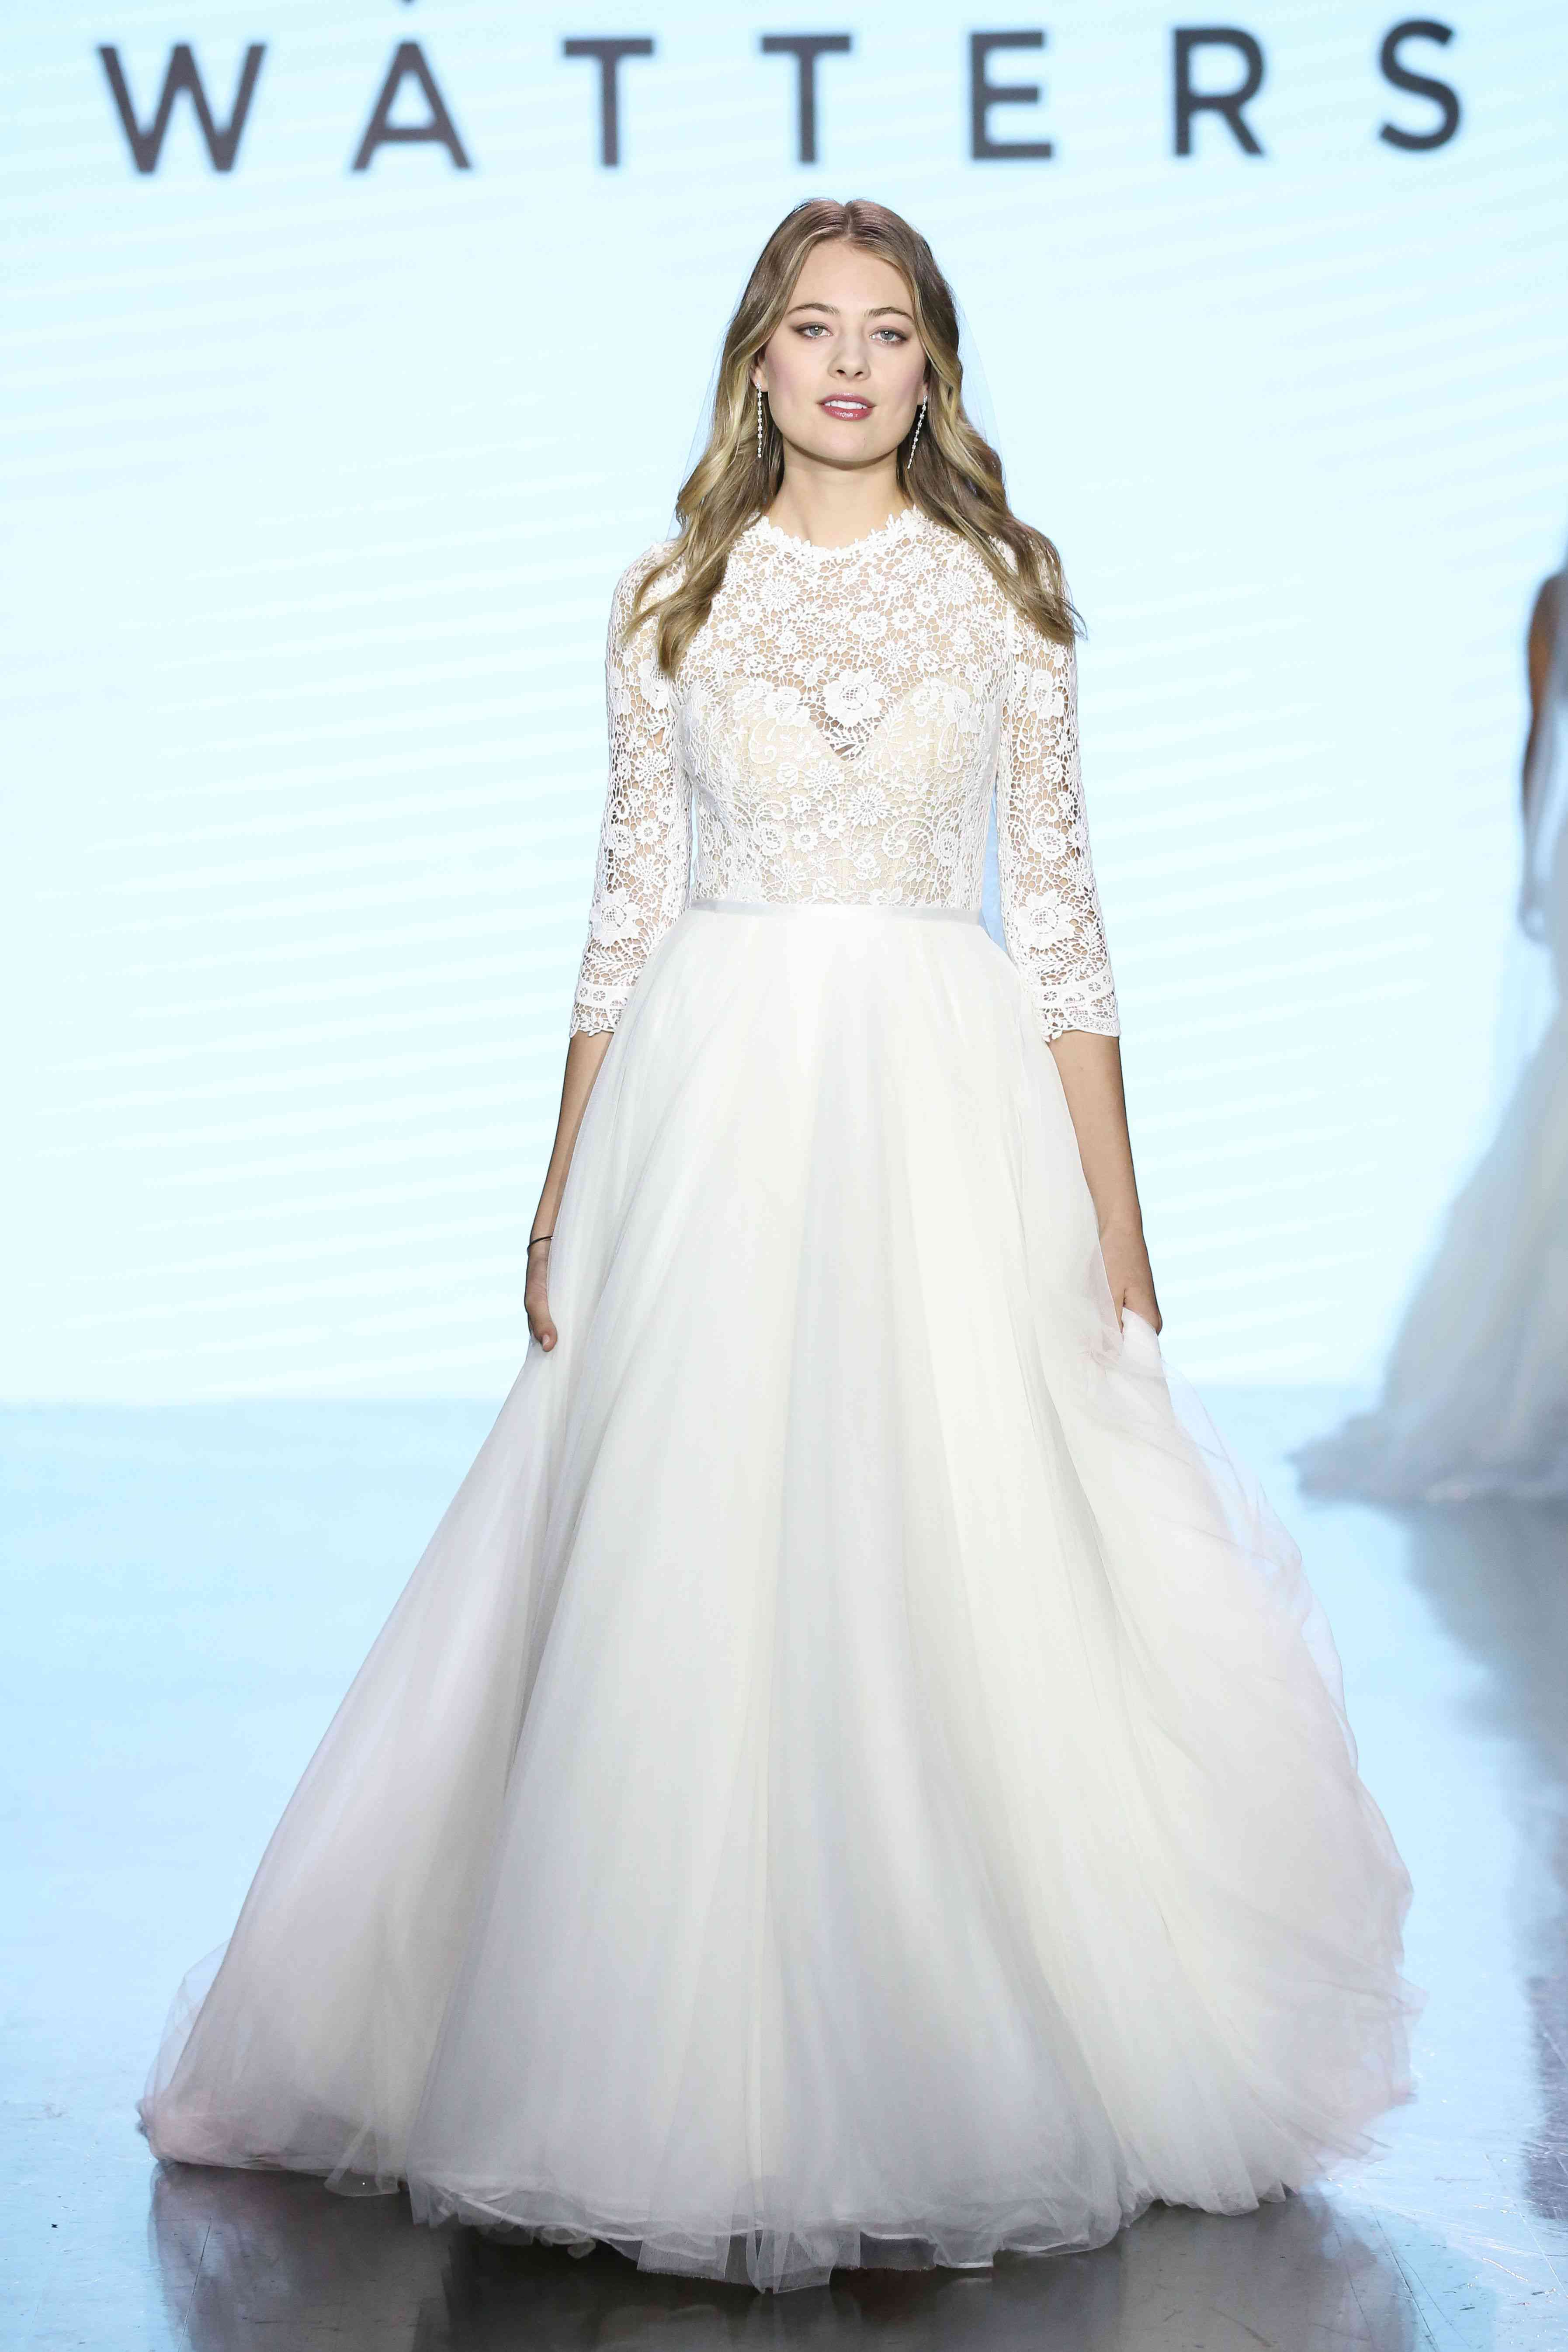 Model on runway in three-quarter-sleeve ballgown with a floral lace high-neck bodice and a tulle skirt